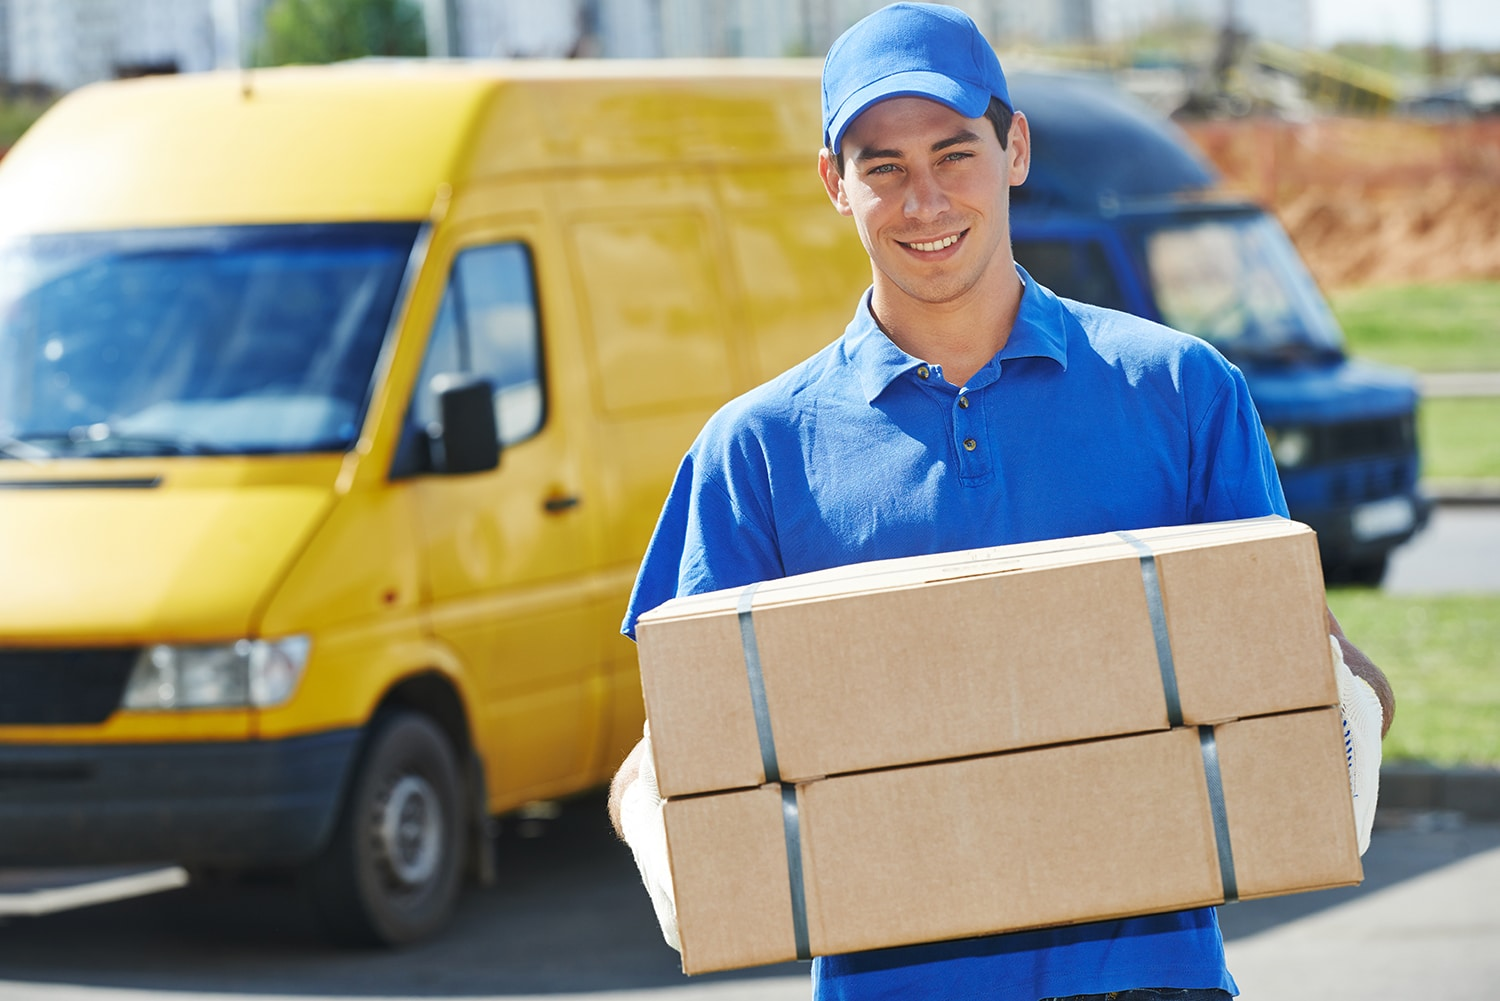 Delivery driver with two packages